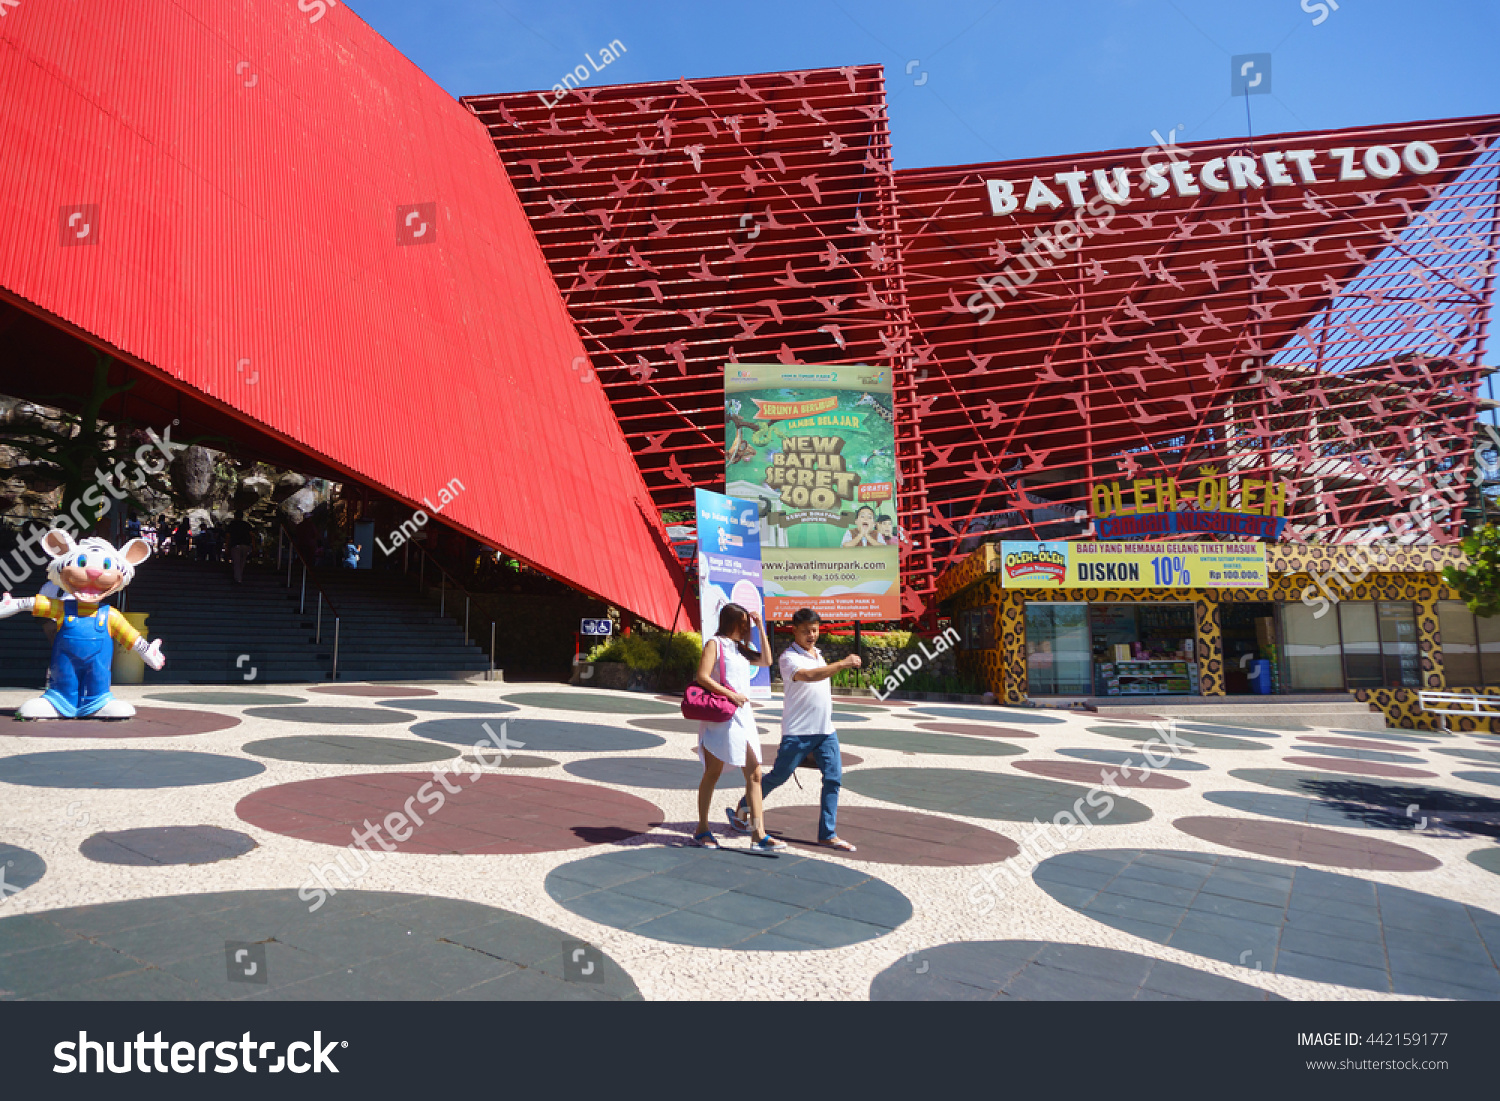 Batu Malang Indonesia Jun 12 2016 People Stock Image 442159177